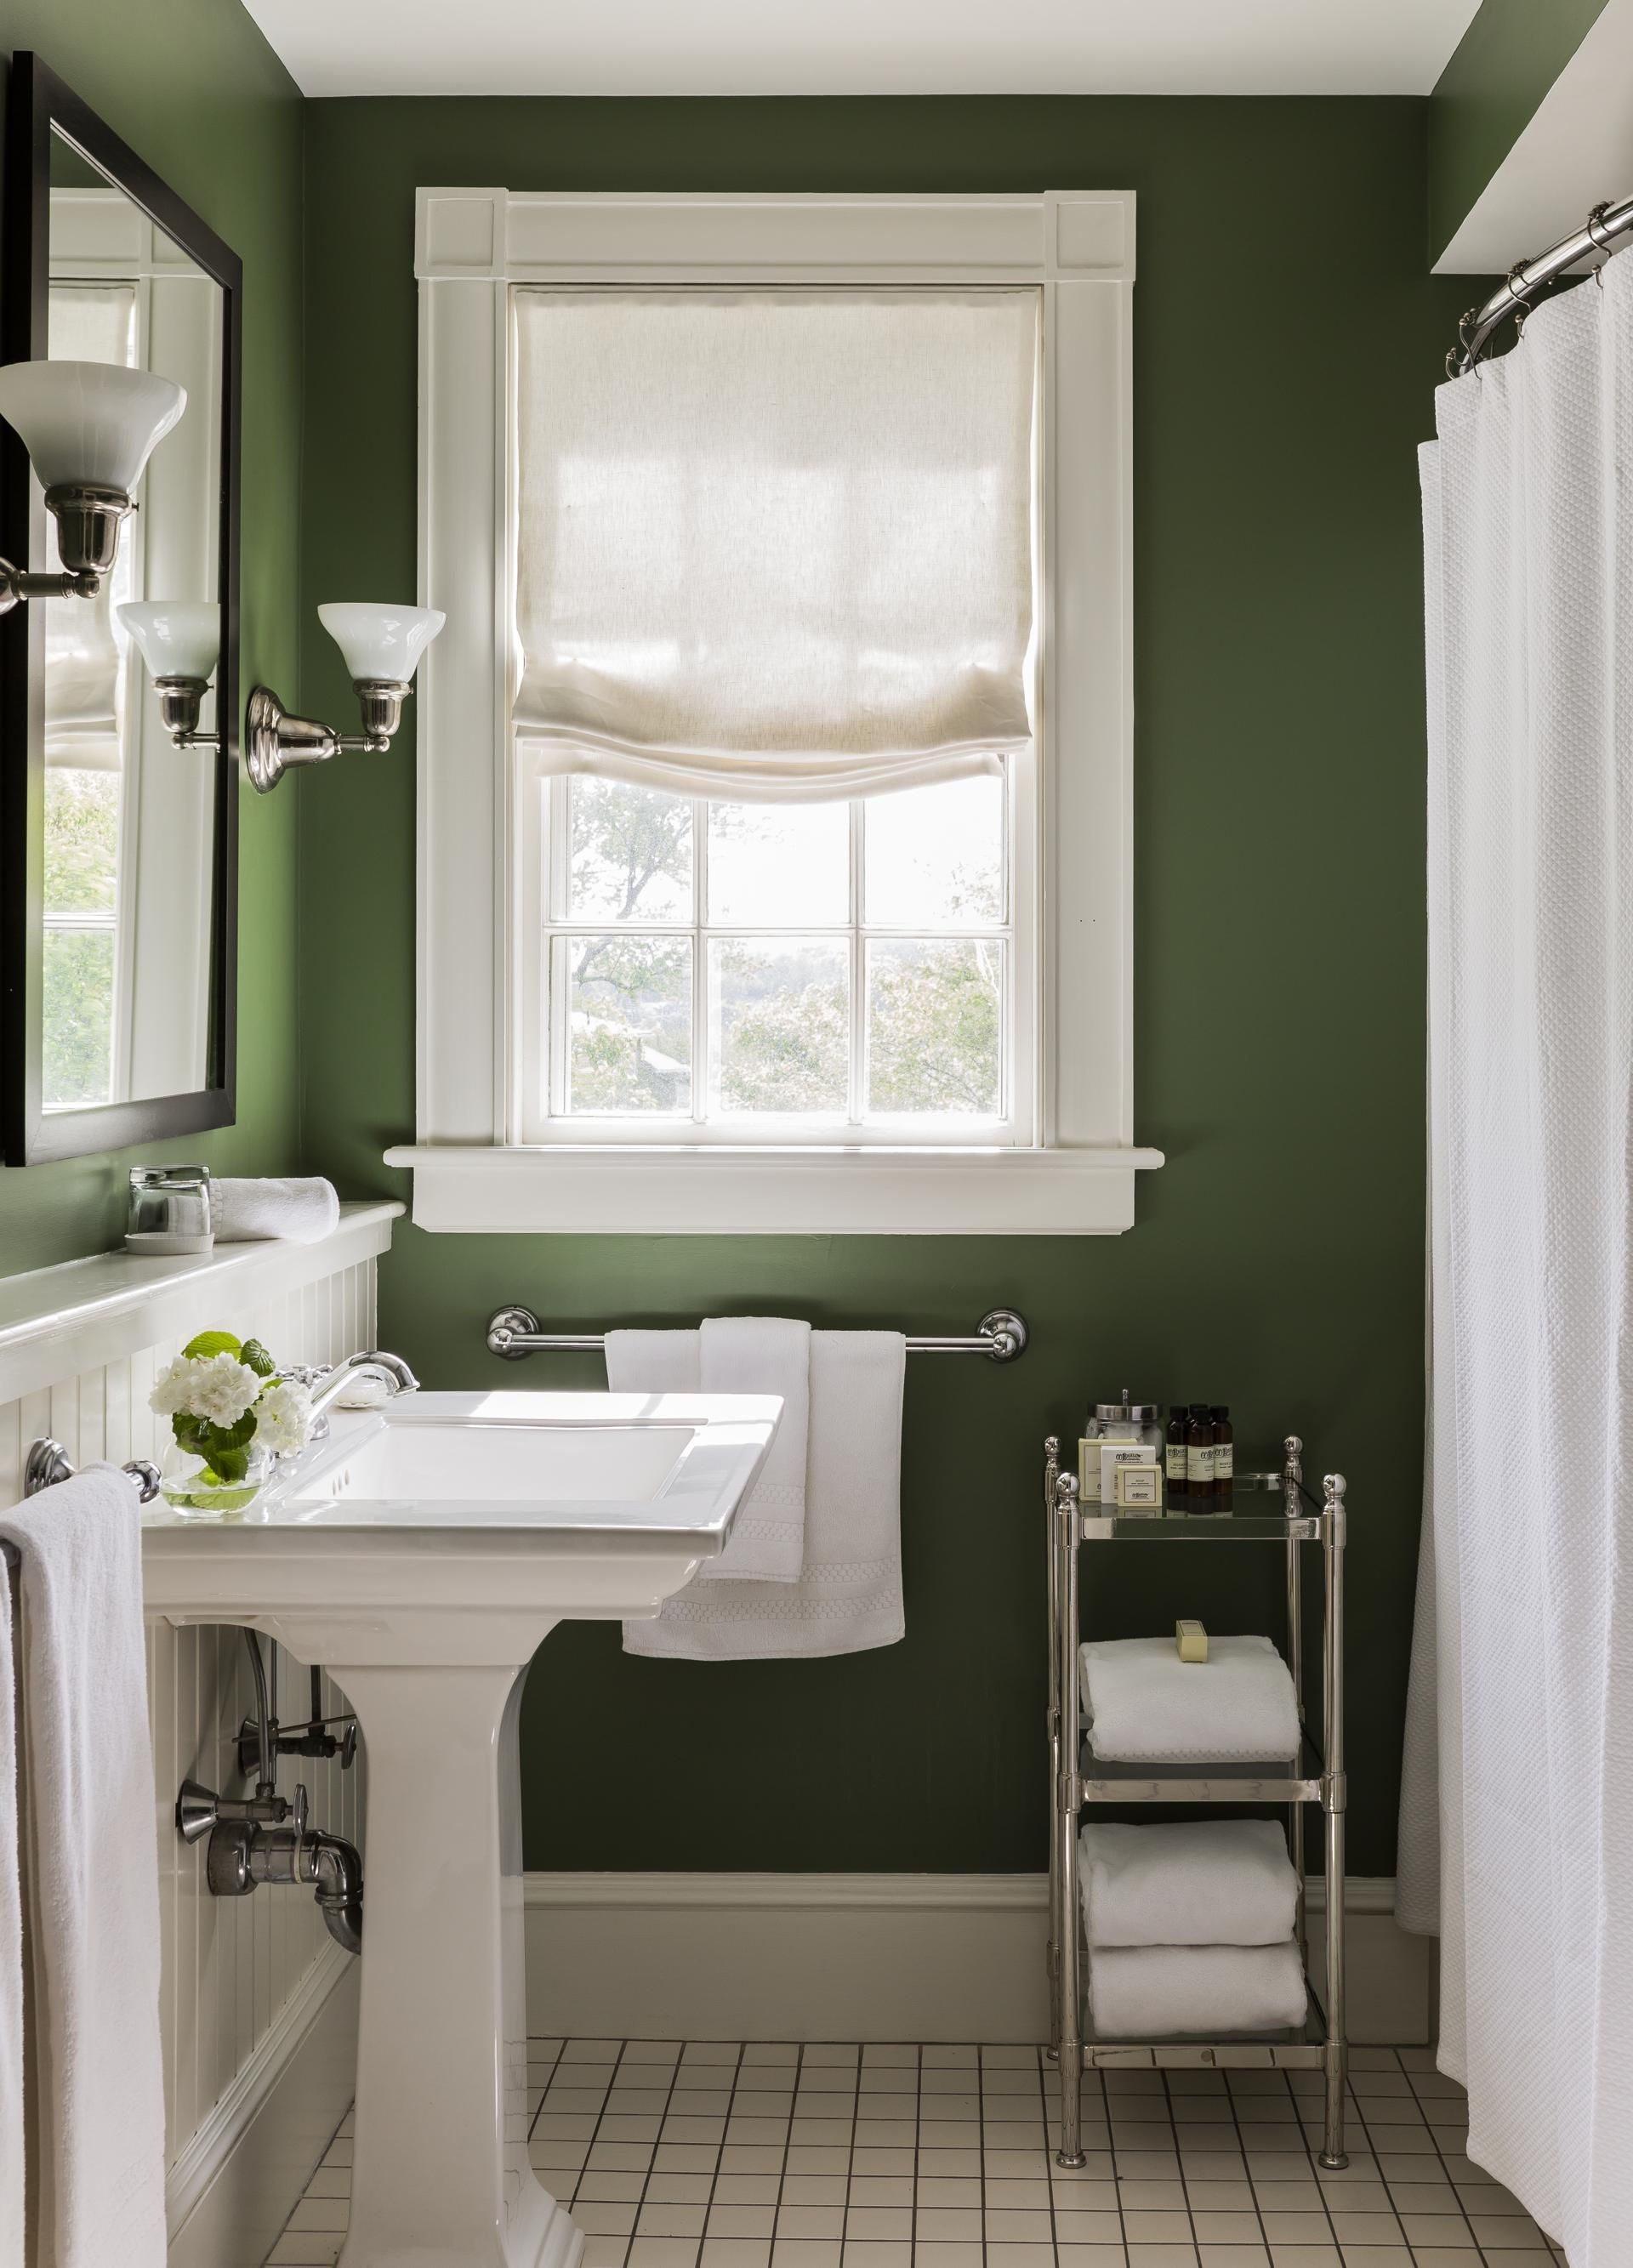 Delicieux Simply Refined Bathroom In Calke Green